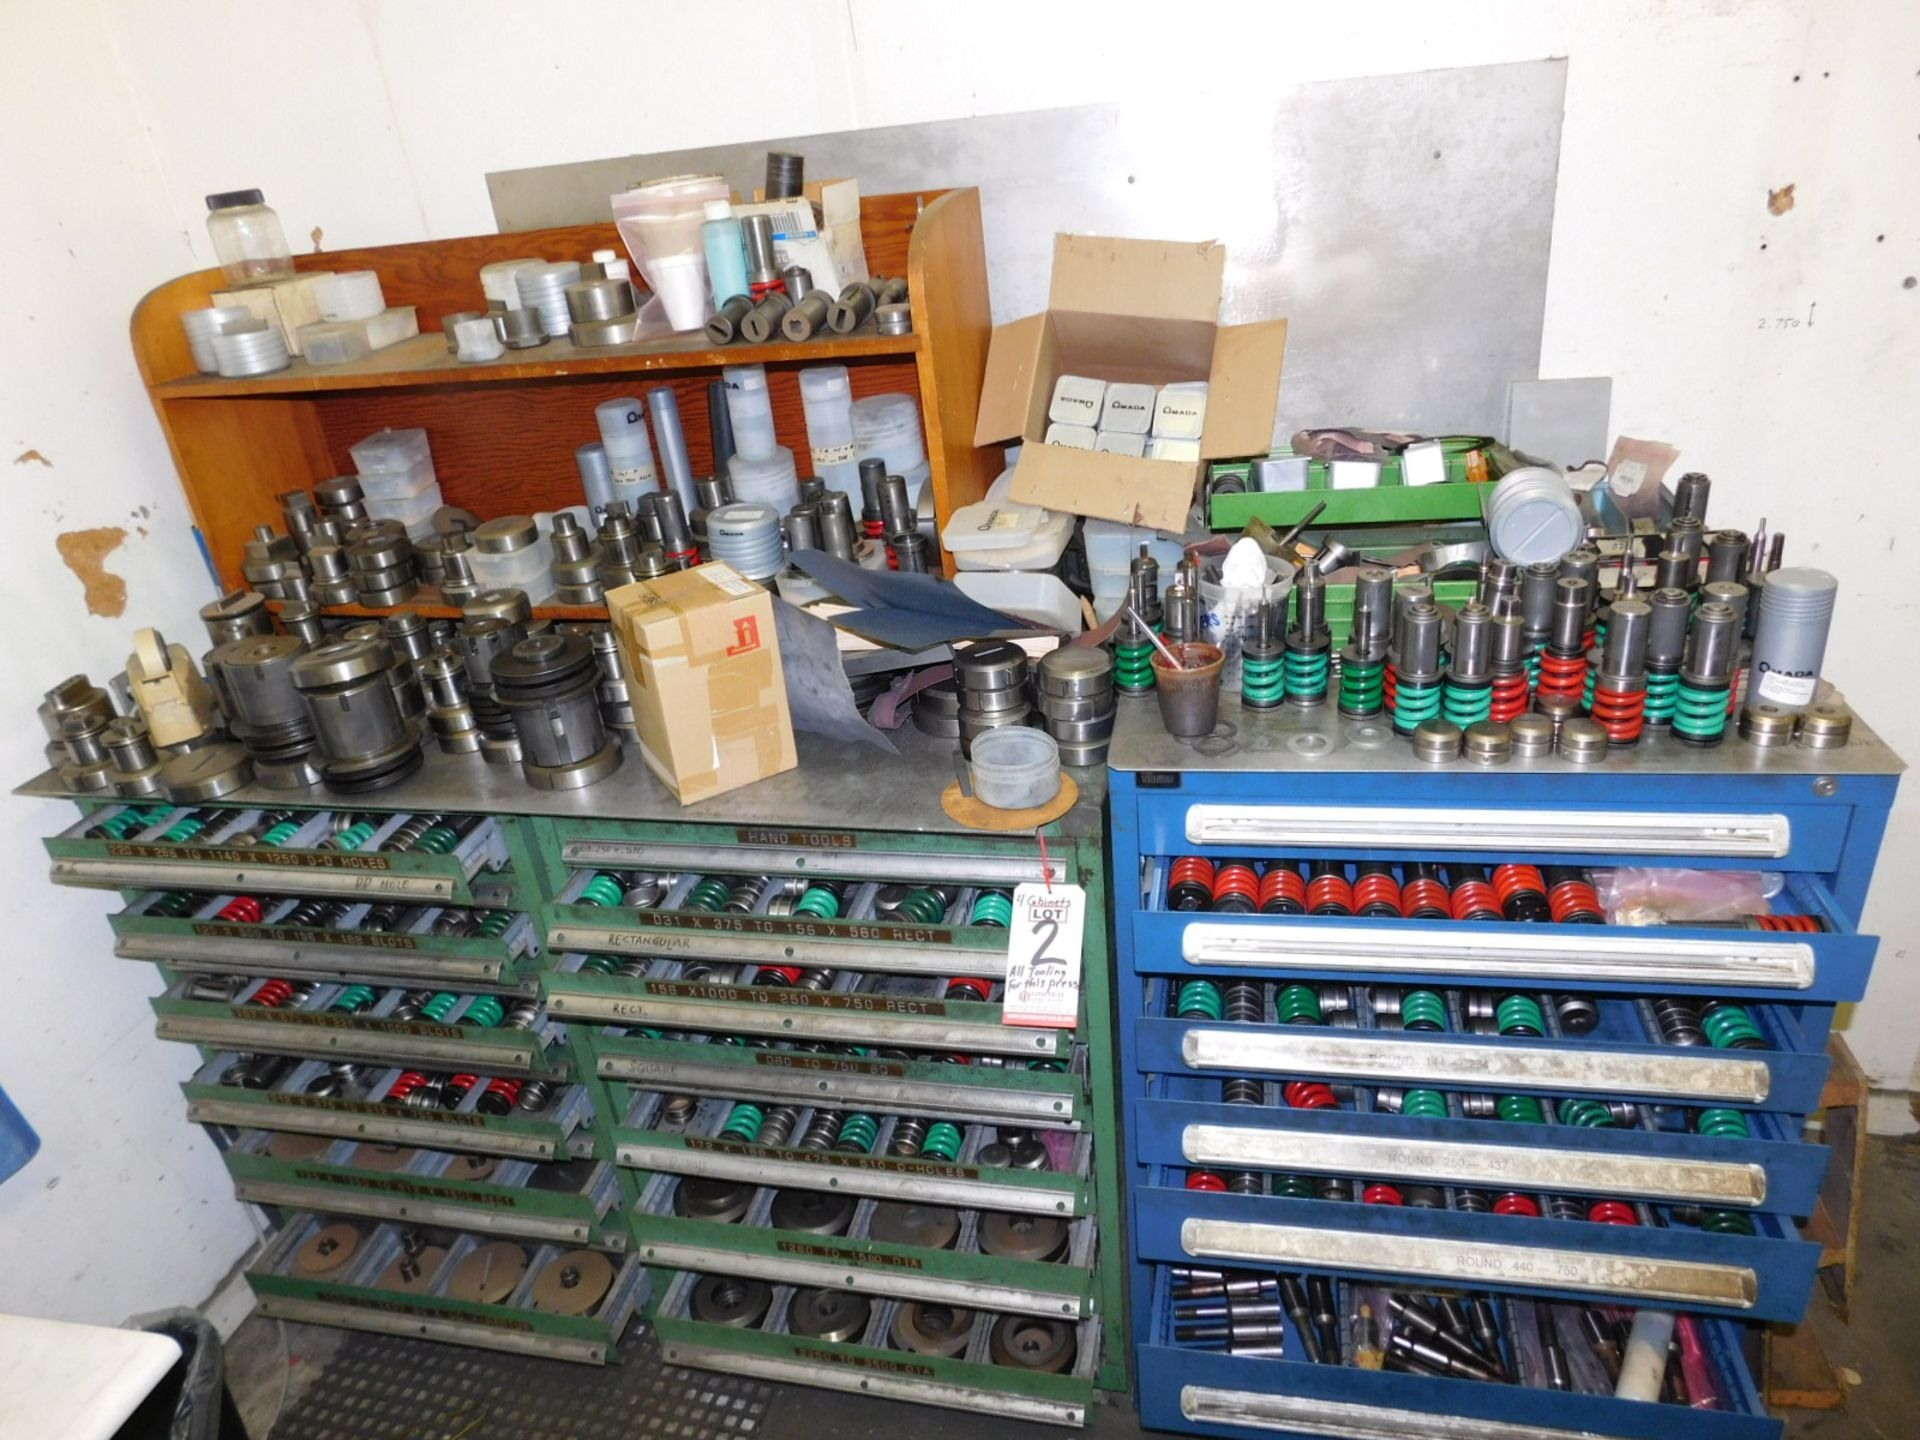 Lot 2 - LOT - (4) CABINETS W/ CONTENTS INSIDE AND ON TOP OF TOOLING FOR THE AMADA PEGA-344Q. PLUS MORE AMADA